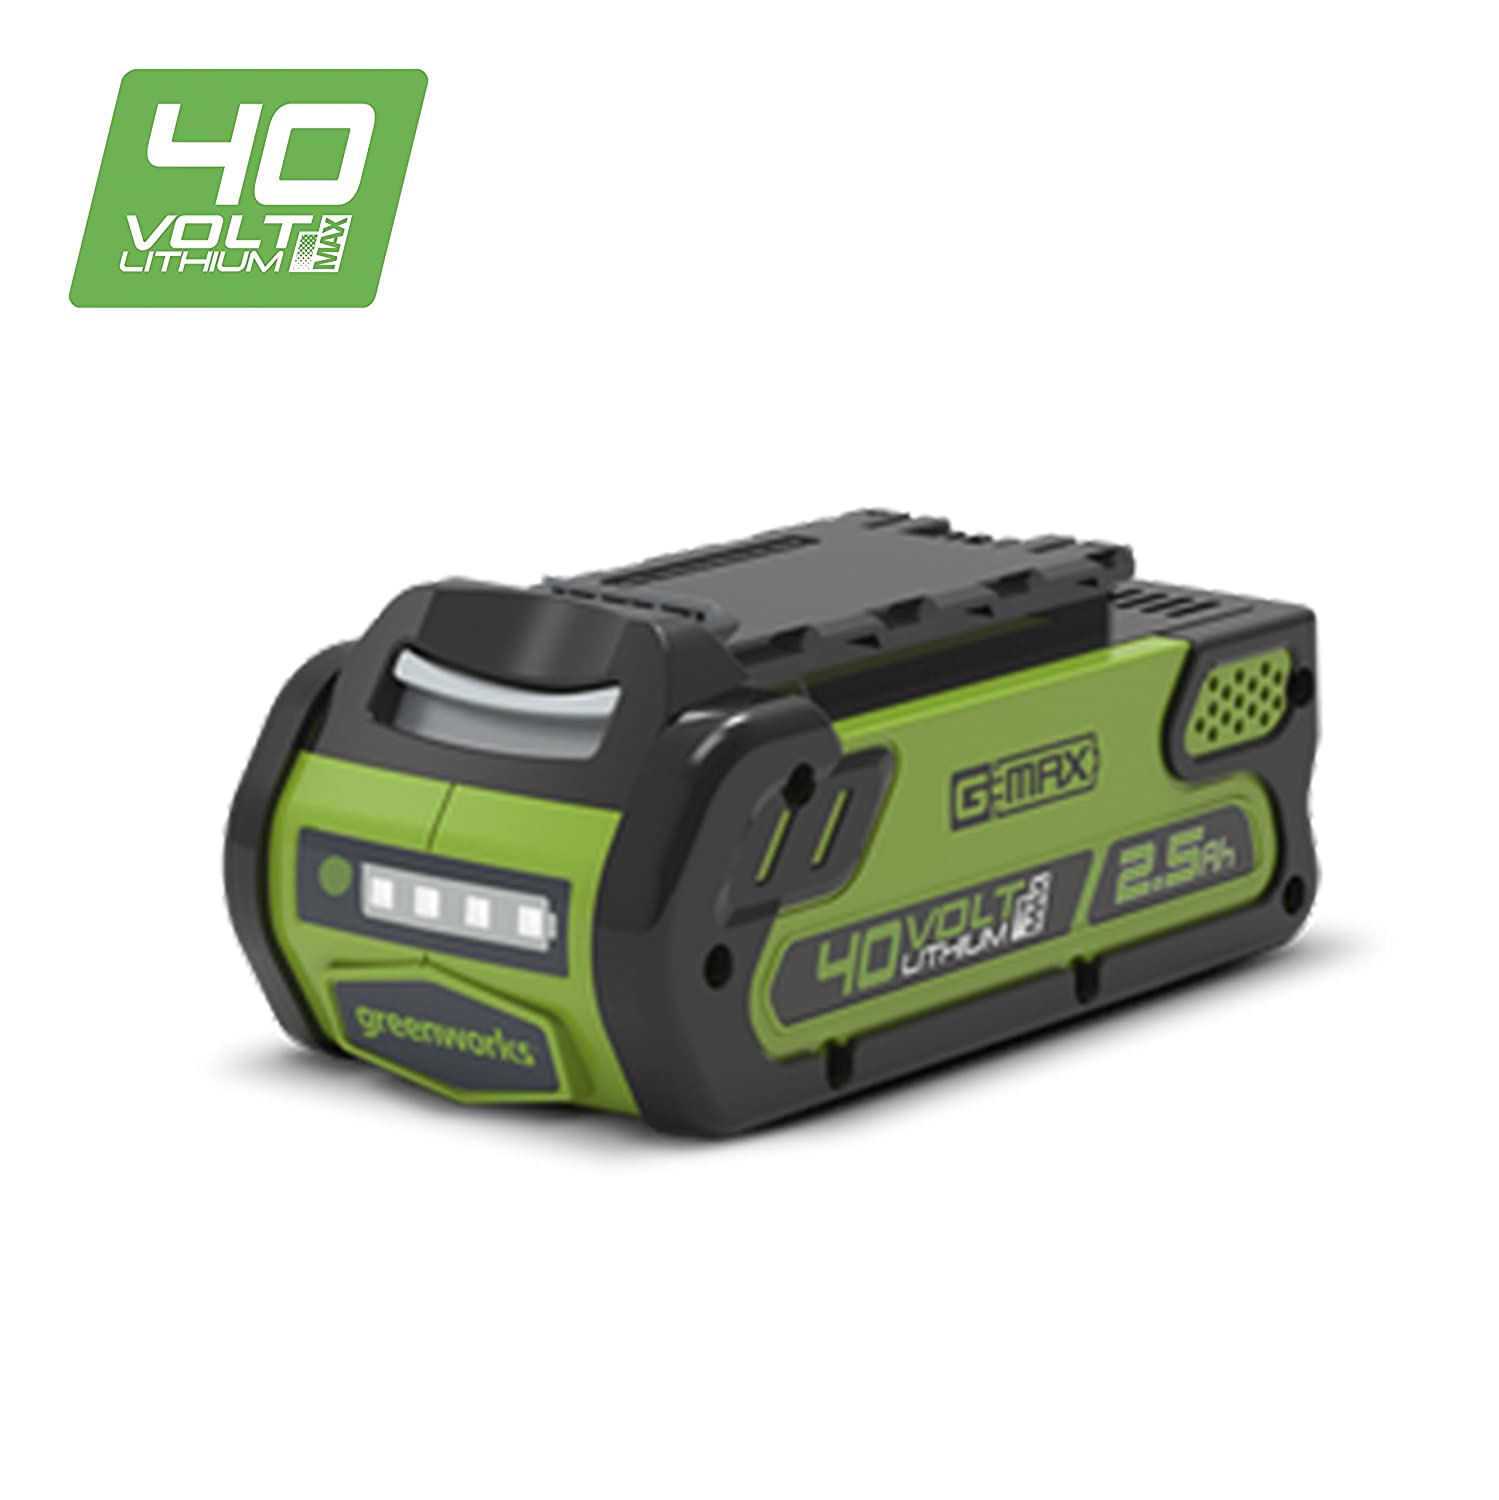 Greenworks 40V Lithium-Ionen Akku 2Ah (ohne Ladegerä t) - 29717 Greenworks Tools GWT40VS2-BATTERY2.0AH